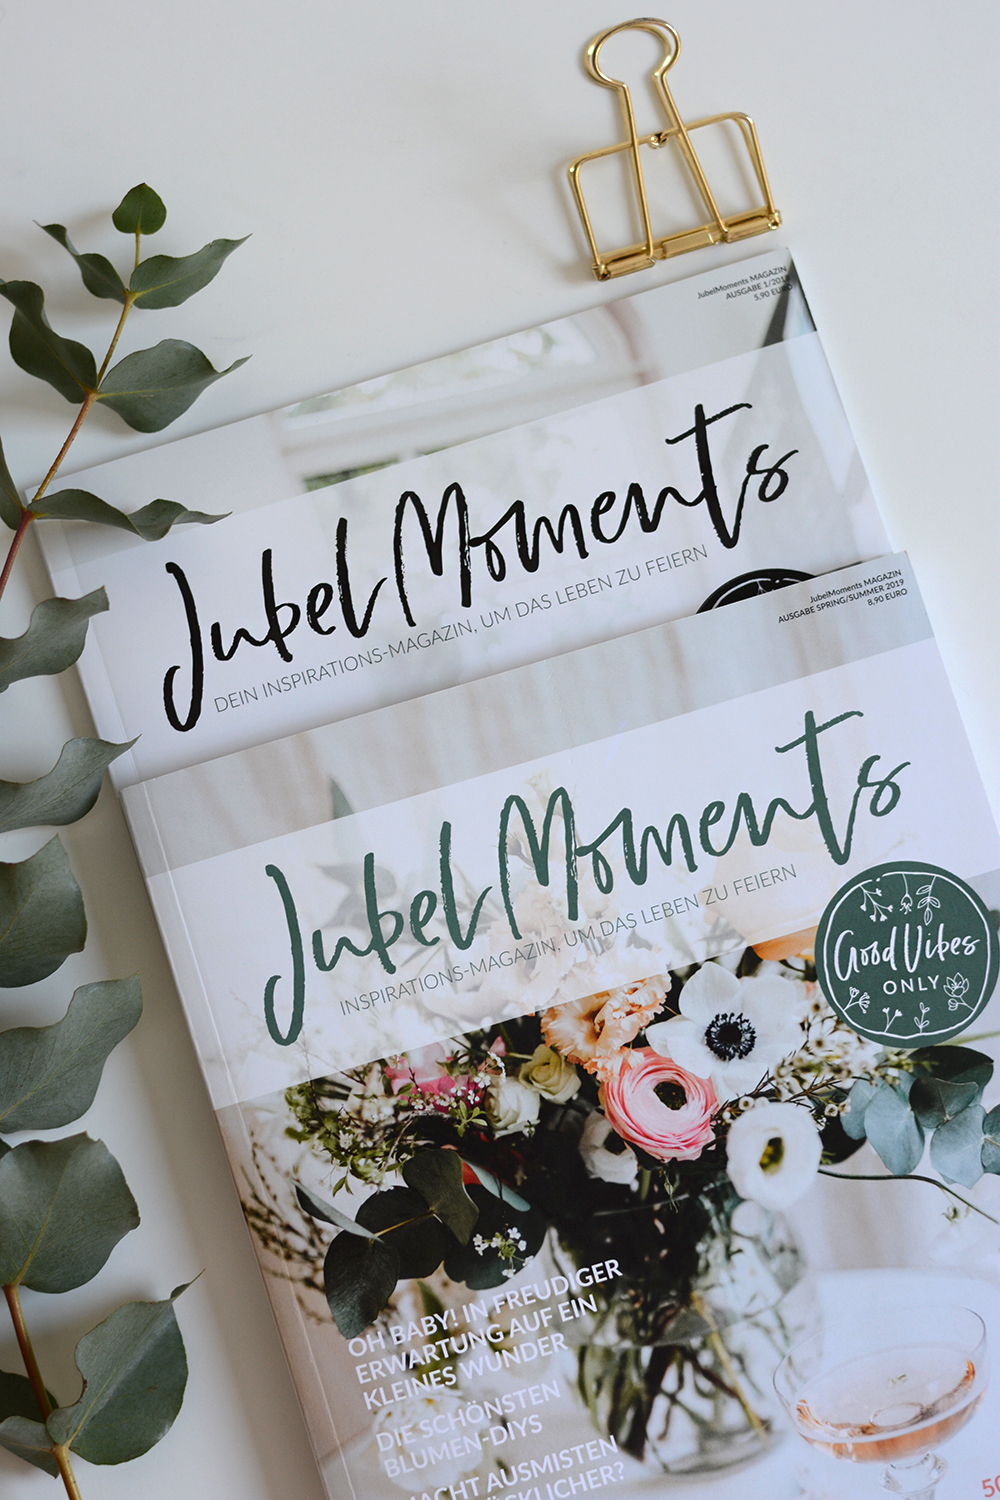 Jubelmoments Magazin: Ausgaben | we love handmade